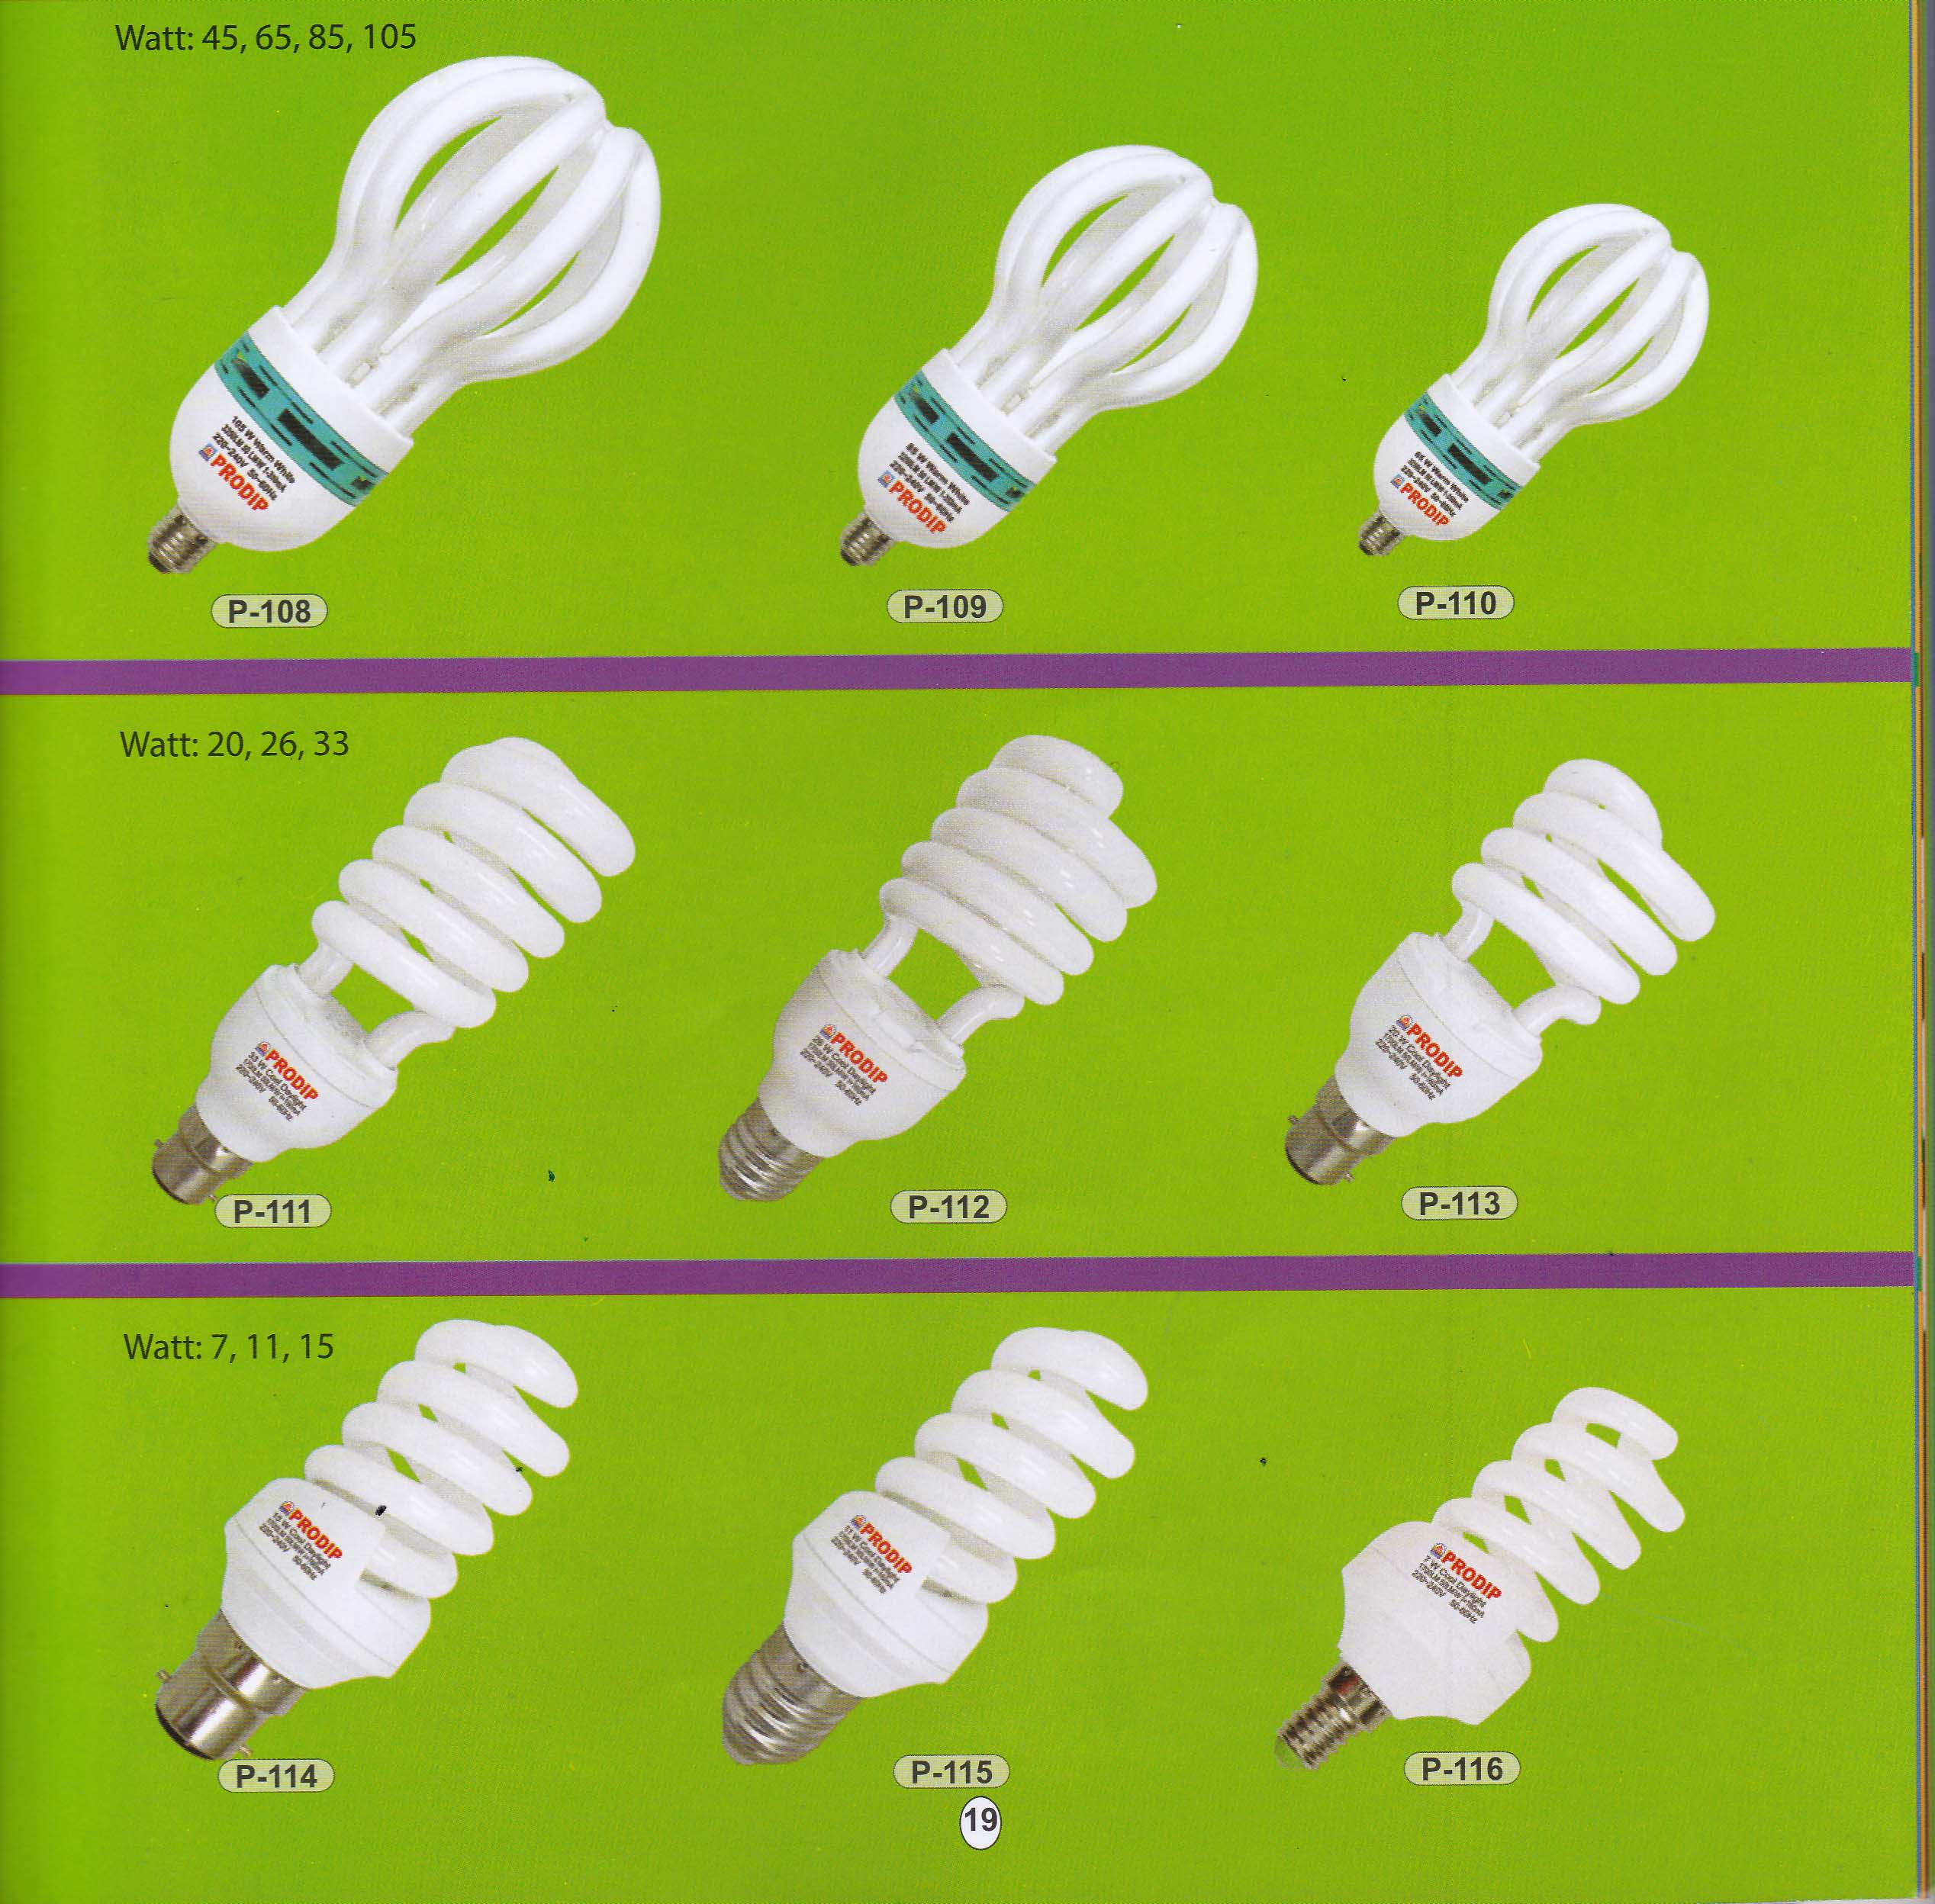 CFL SPECIFICATIONS Image